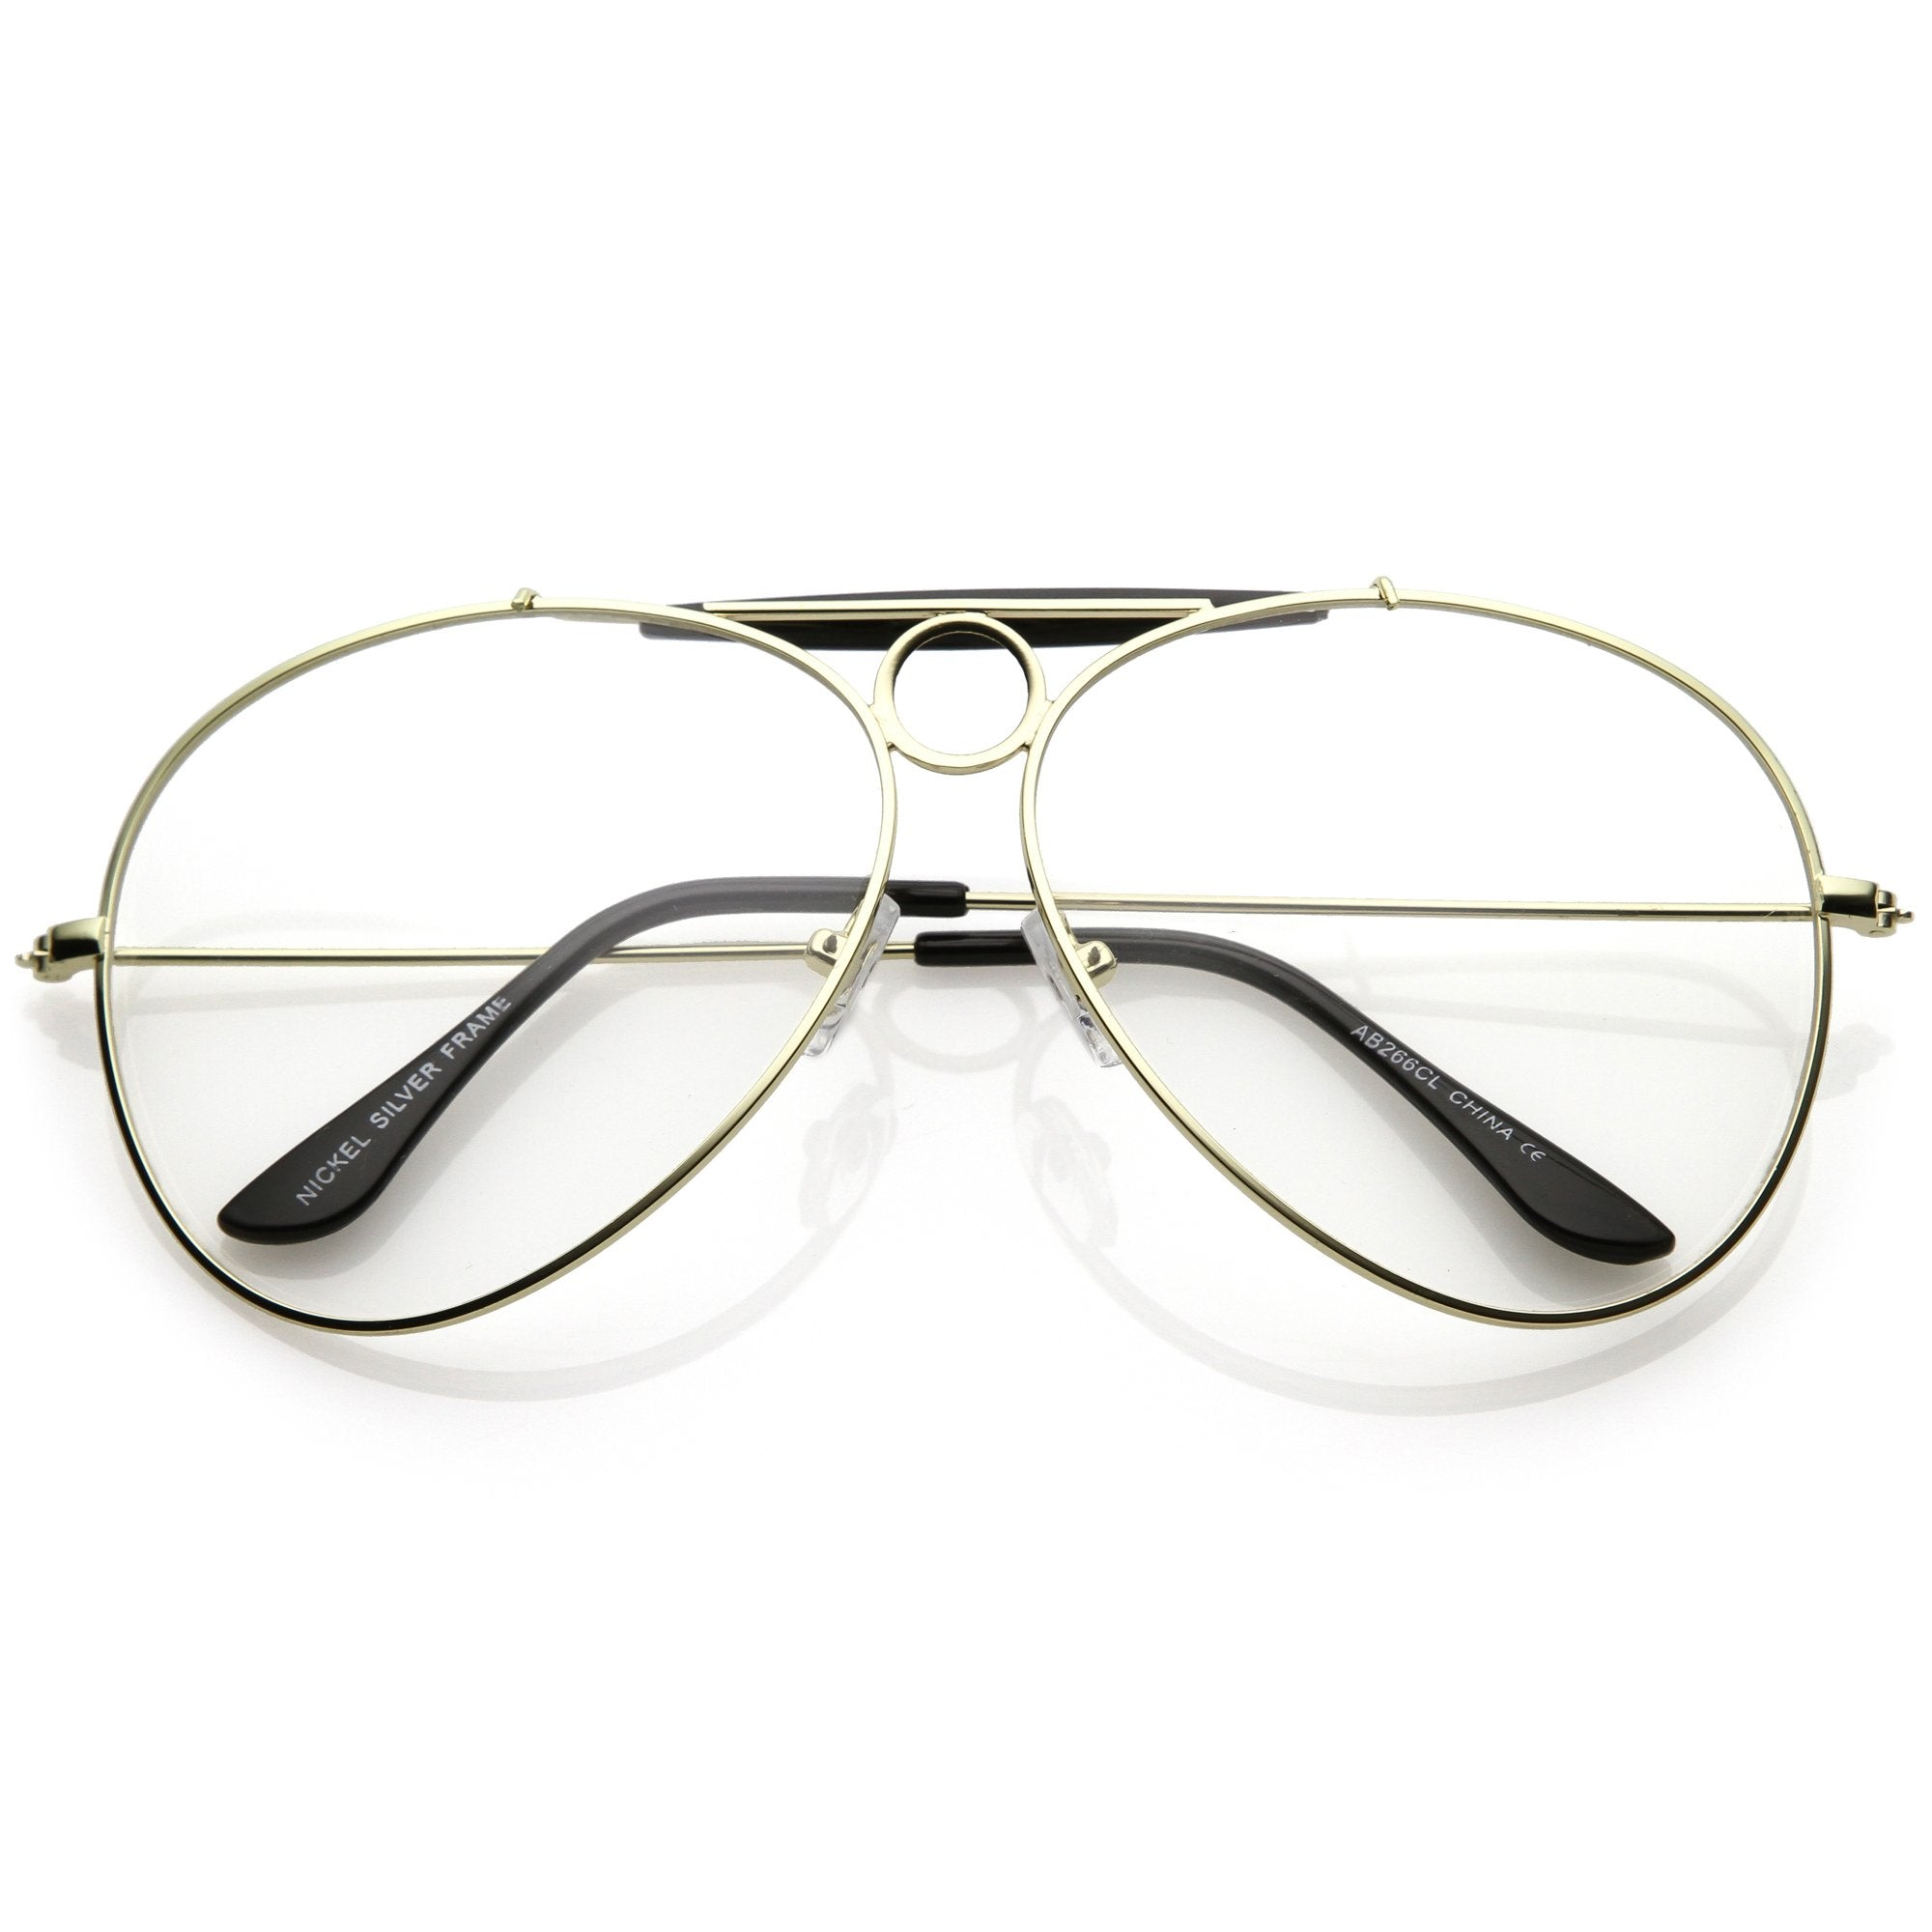 990cd1d2029 Oversize Retro Dad Fashion Clear Lens Aviator Glasses C301